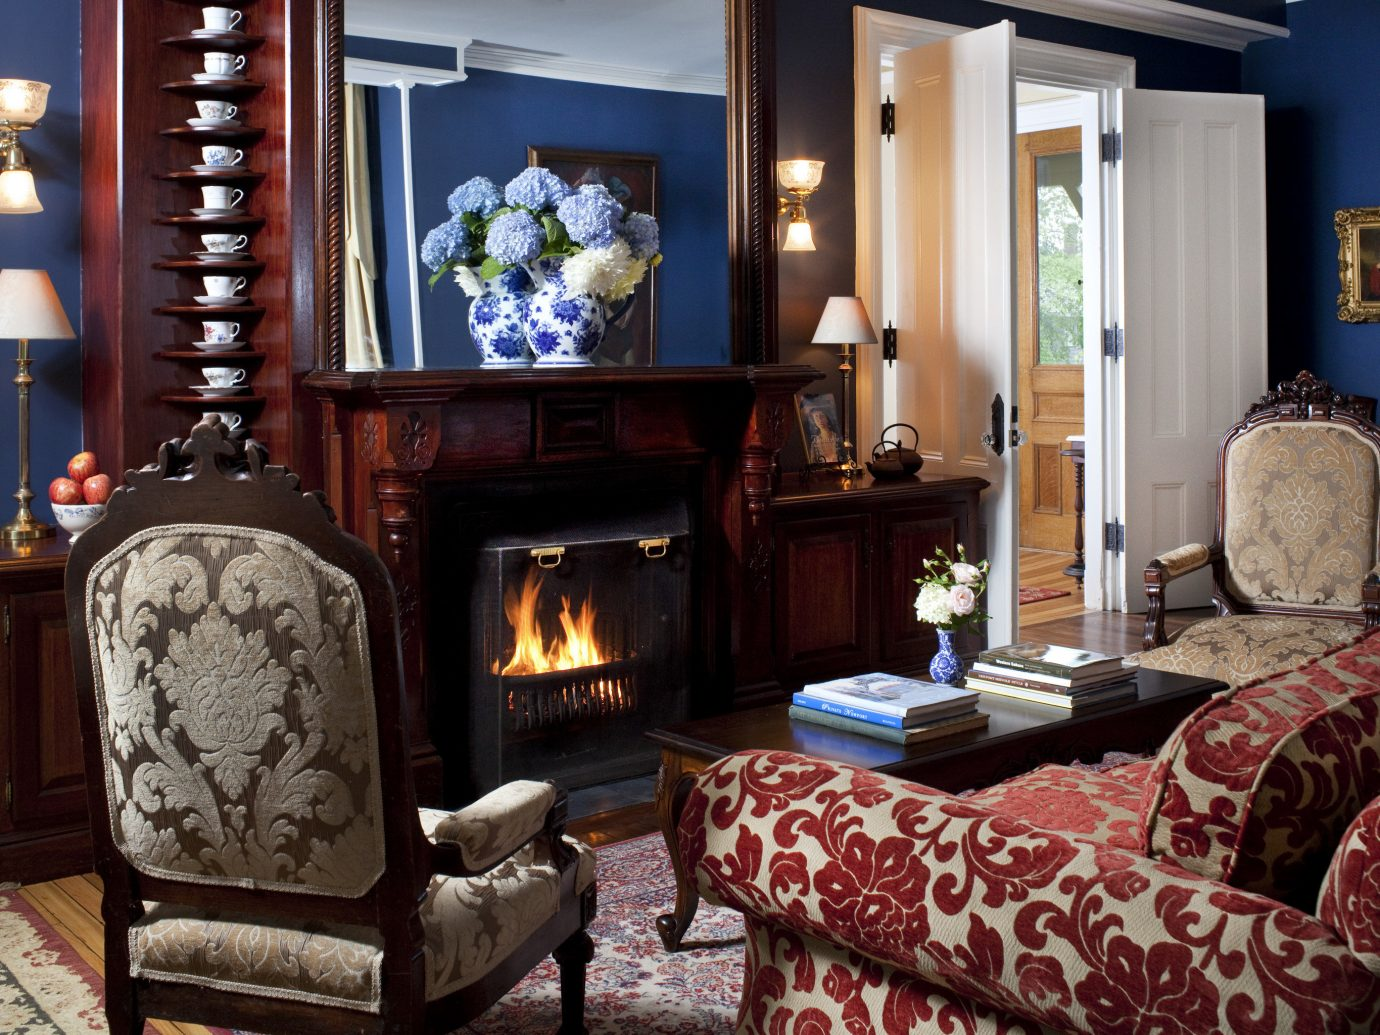 Boutique Hotels Hotels Romantic Getaways Romantic Hotels indoor Living room wall Fireplace floor living room fire interior design home furniture decorated